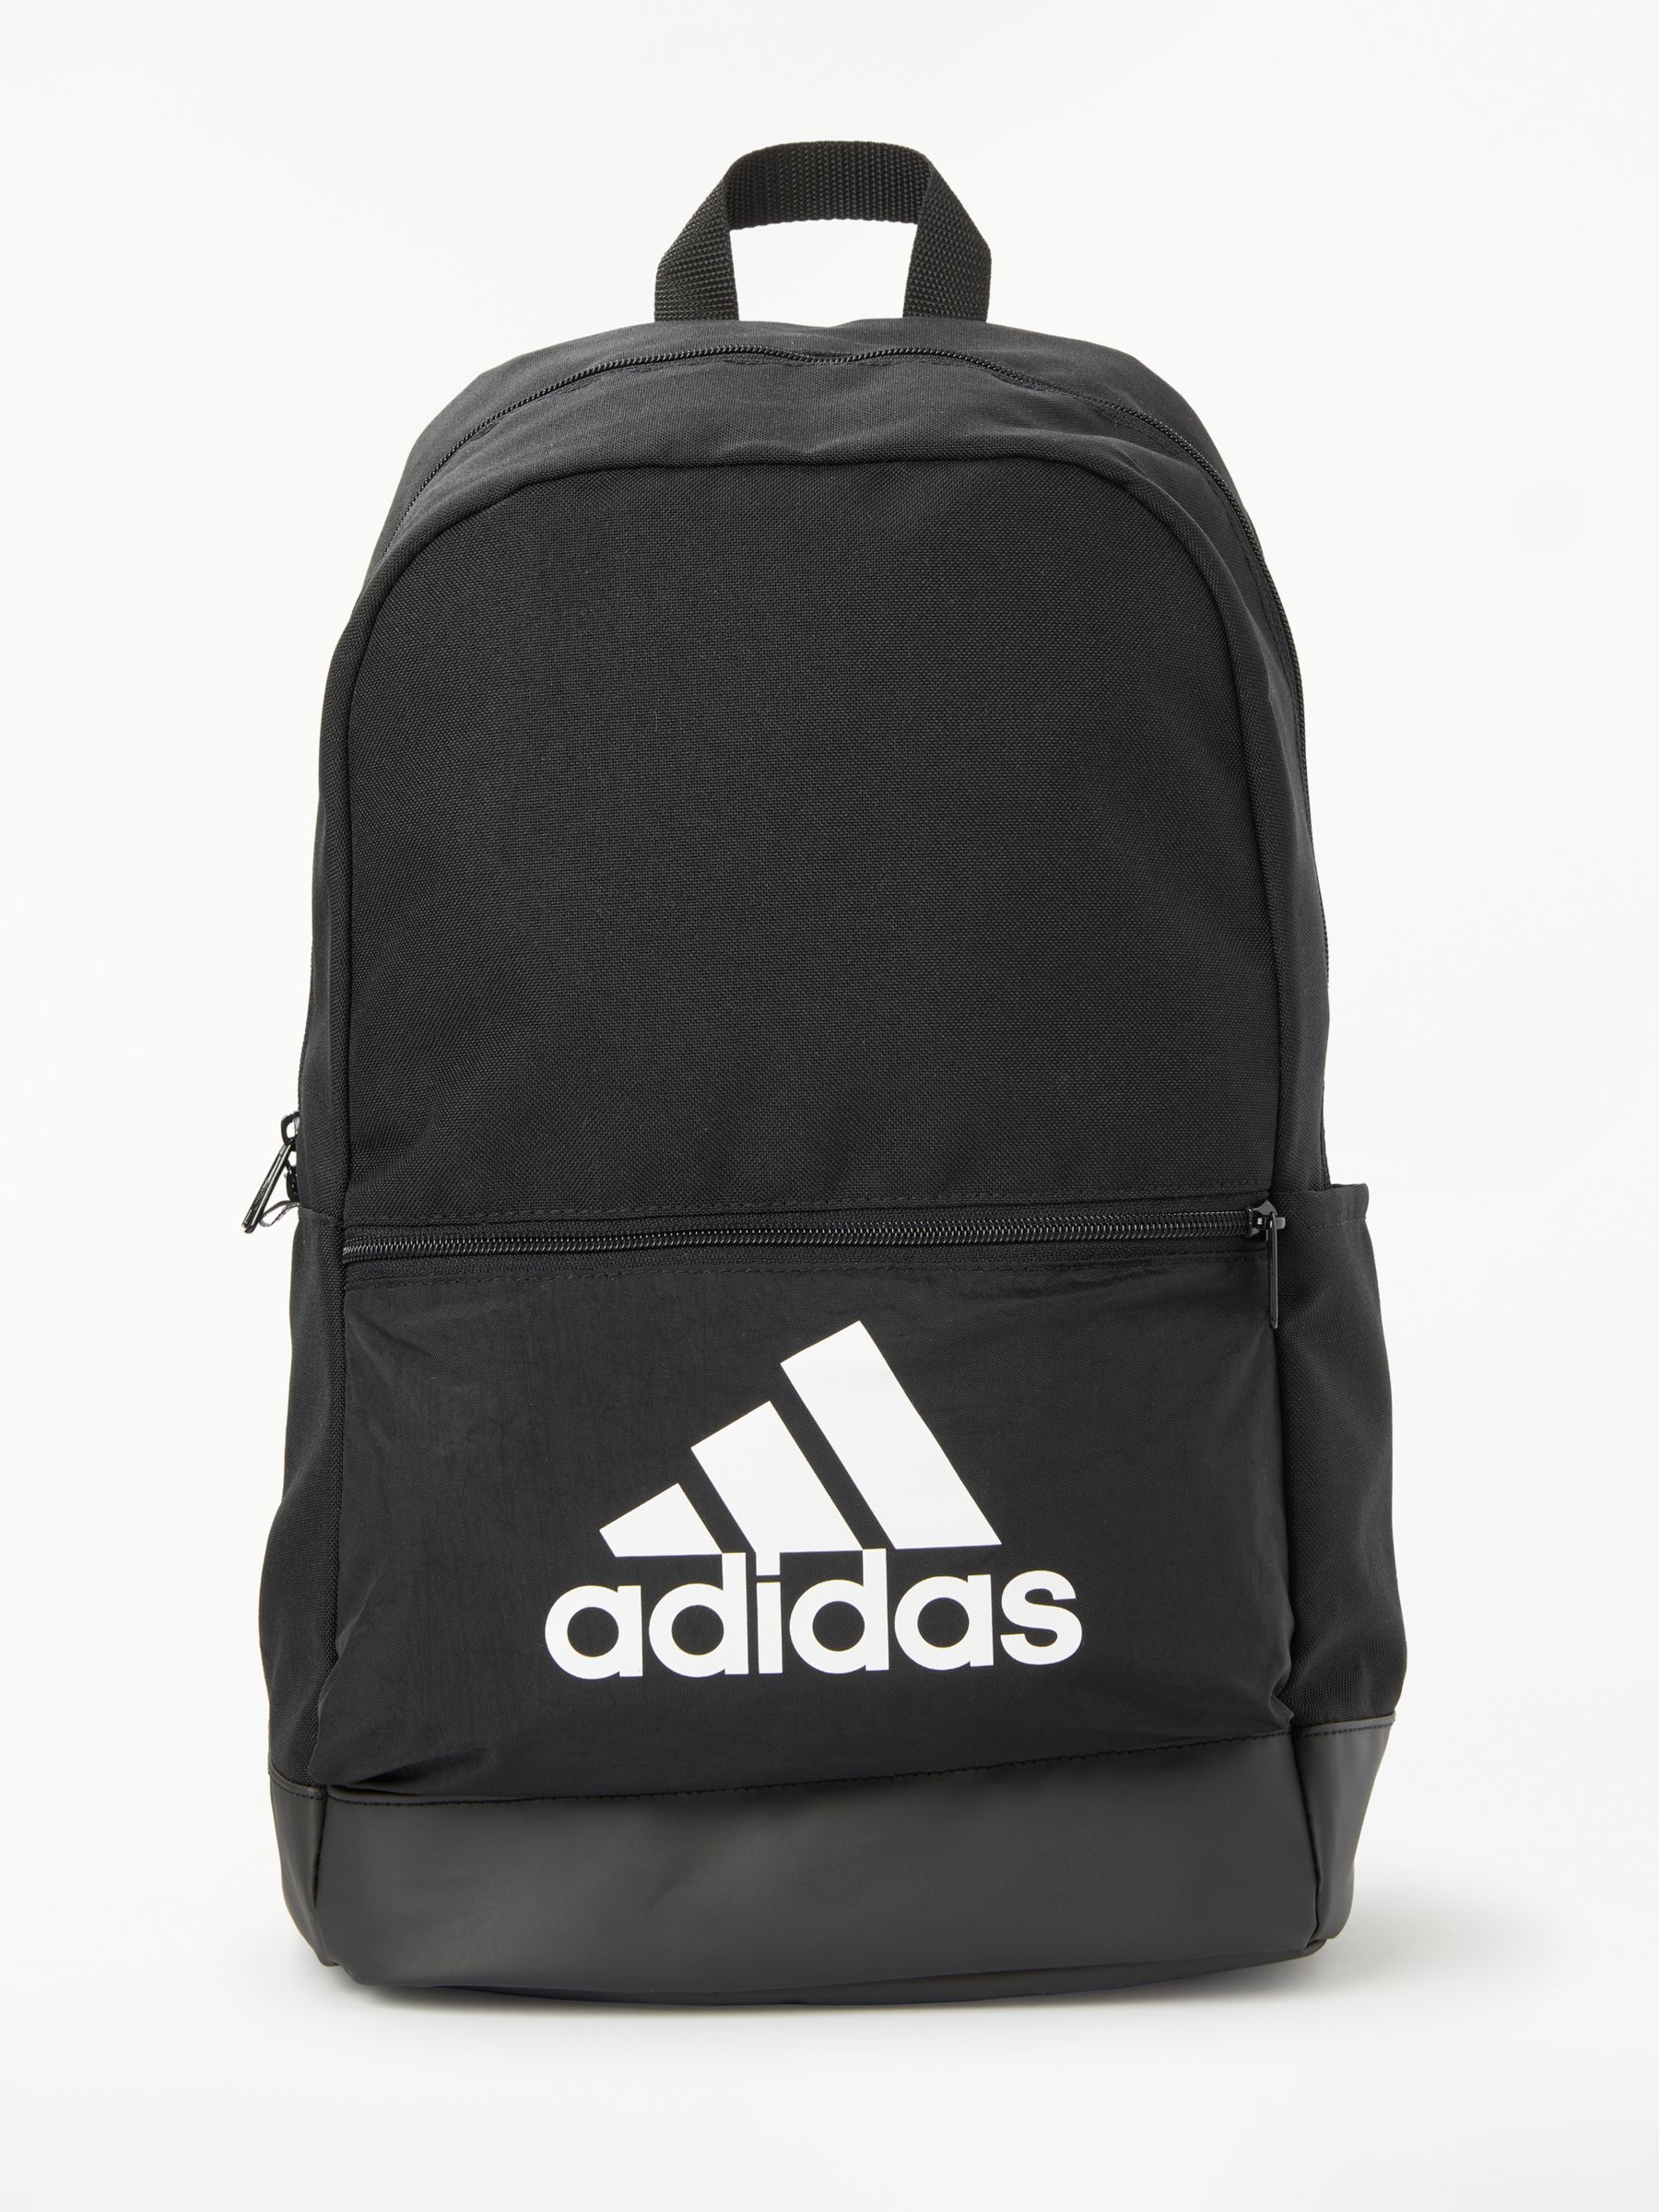 Adidas adidas Classic Badge of Sport Backpack, Black/White